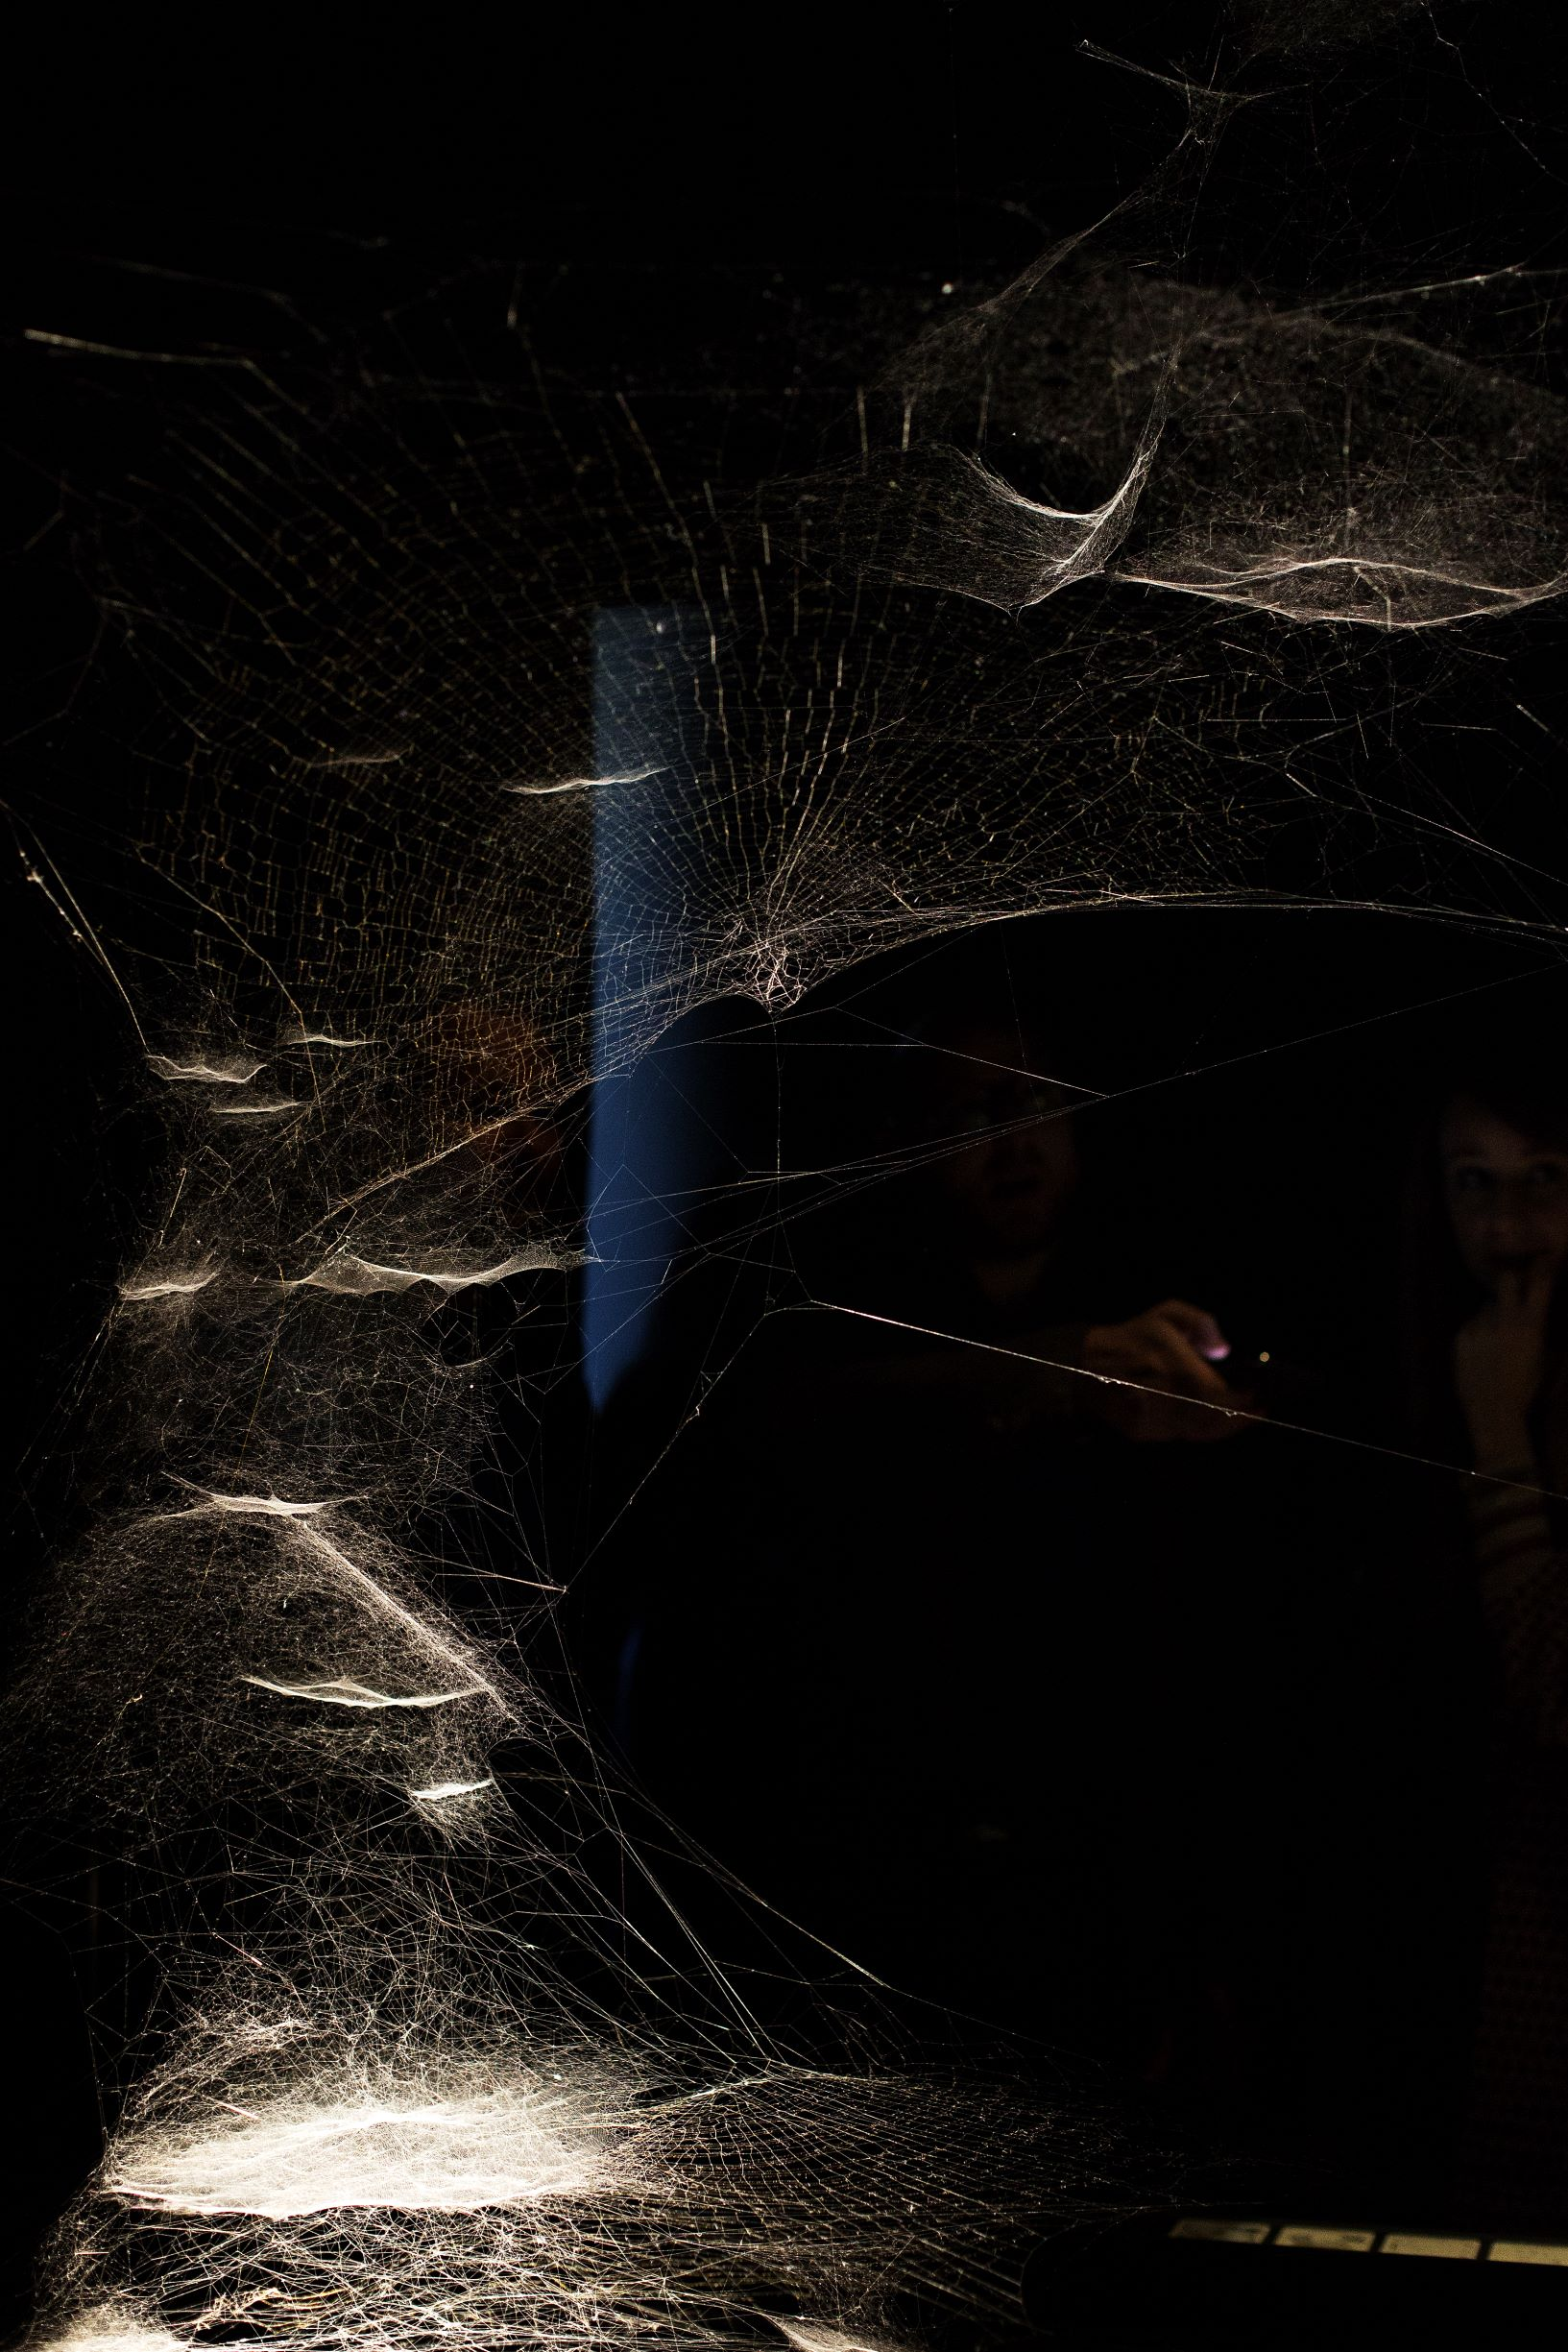 Tomás Saraceno, Spider/Web Pavilion 7: Oracle Readings, Weaving Arachnomancy, Synanthropic Futures: At-ten(t)sion to invertebrate rights!, 2019. Mixed media. Photo by: Francesco Galli. Courtesy: La Biennale di Venezia